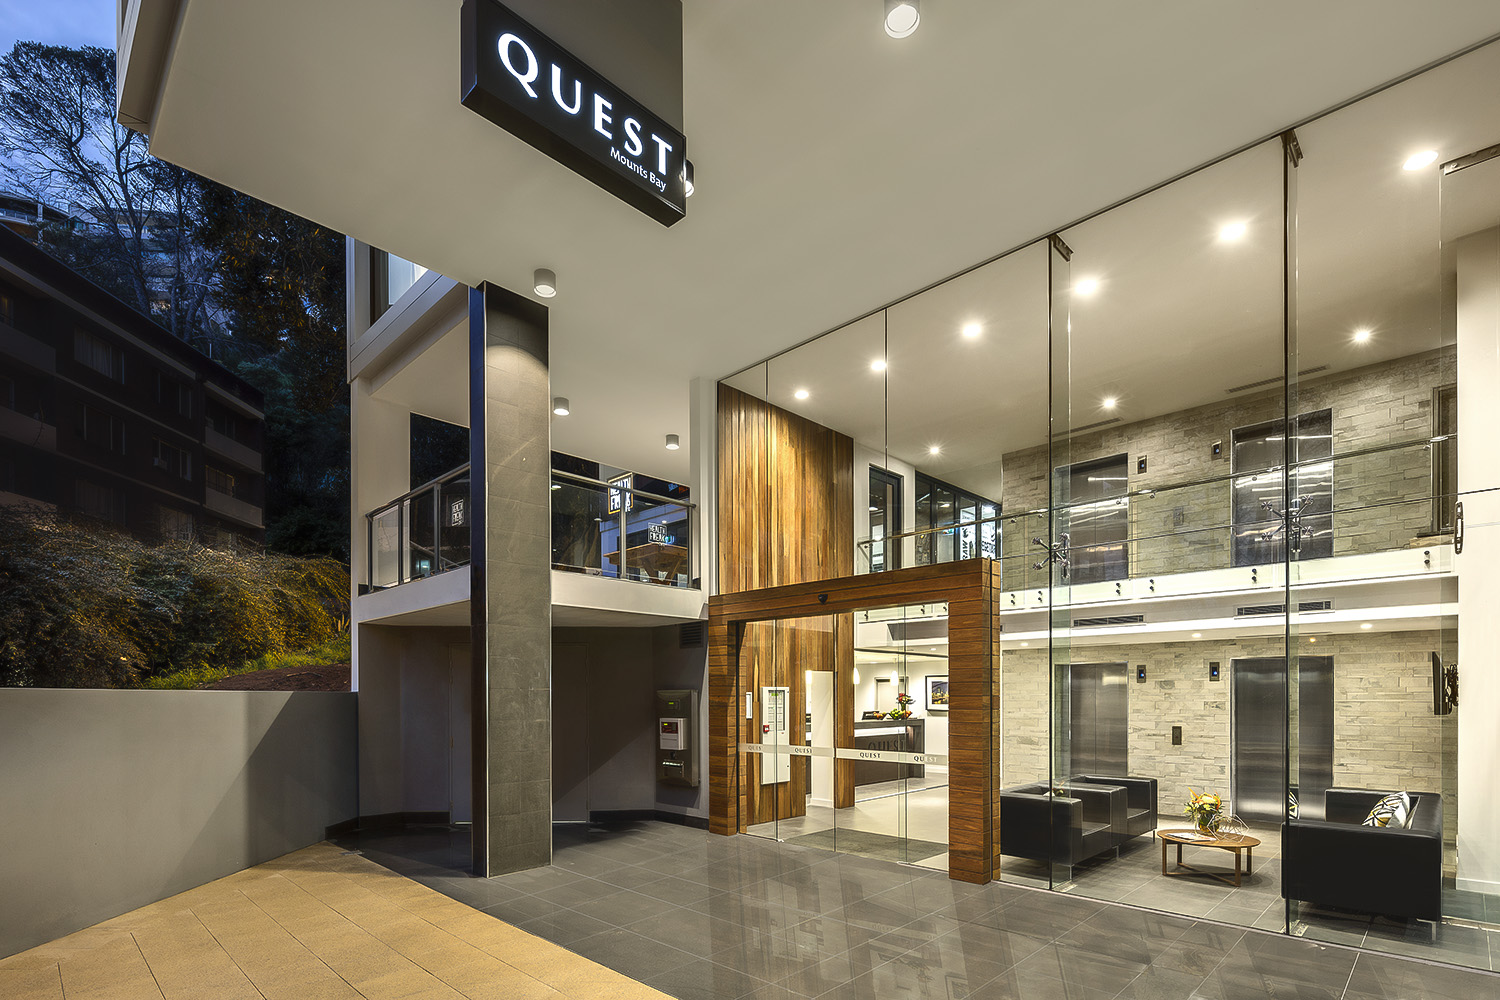 Quest Mounts Bay Road- PERTH, Western Australia - 27th Australian Conference on Microscopy and Microanalysis